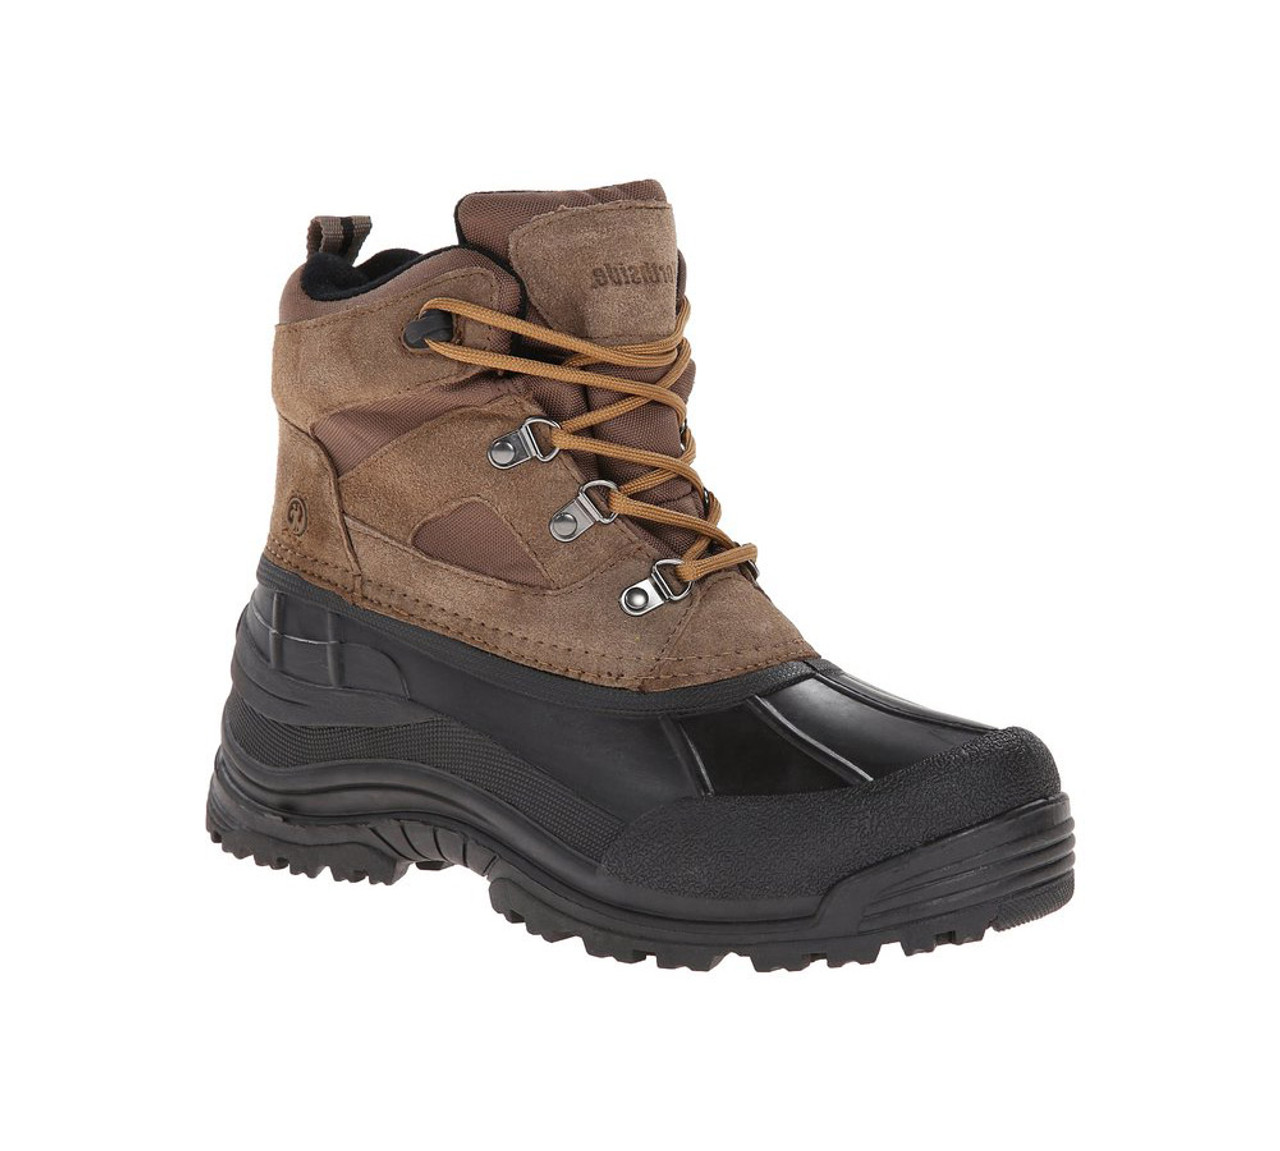 ea019aa9a978 Northside Men s Tundra Boot Bark - Shop now   Shoolu.com